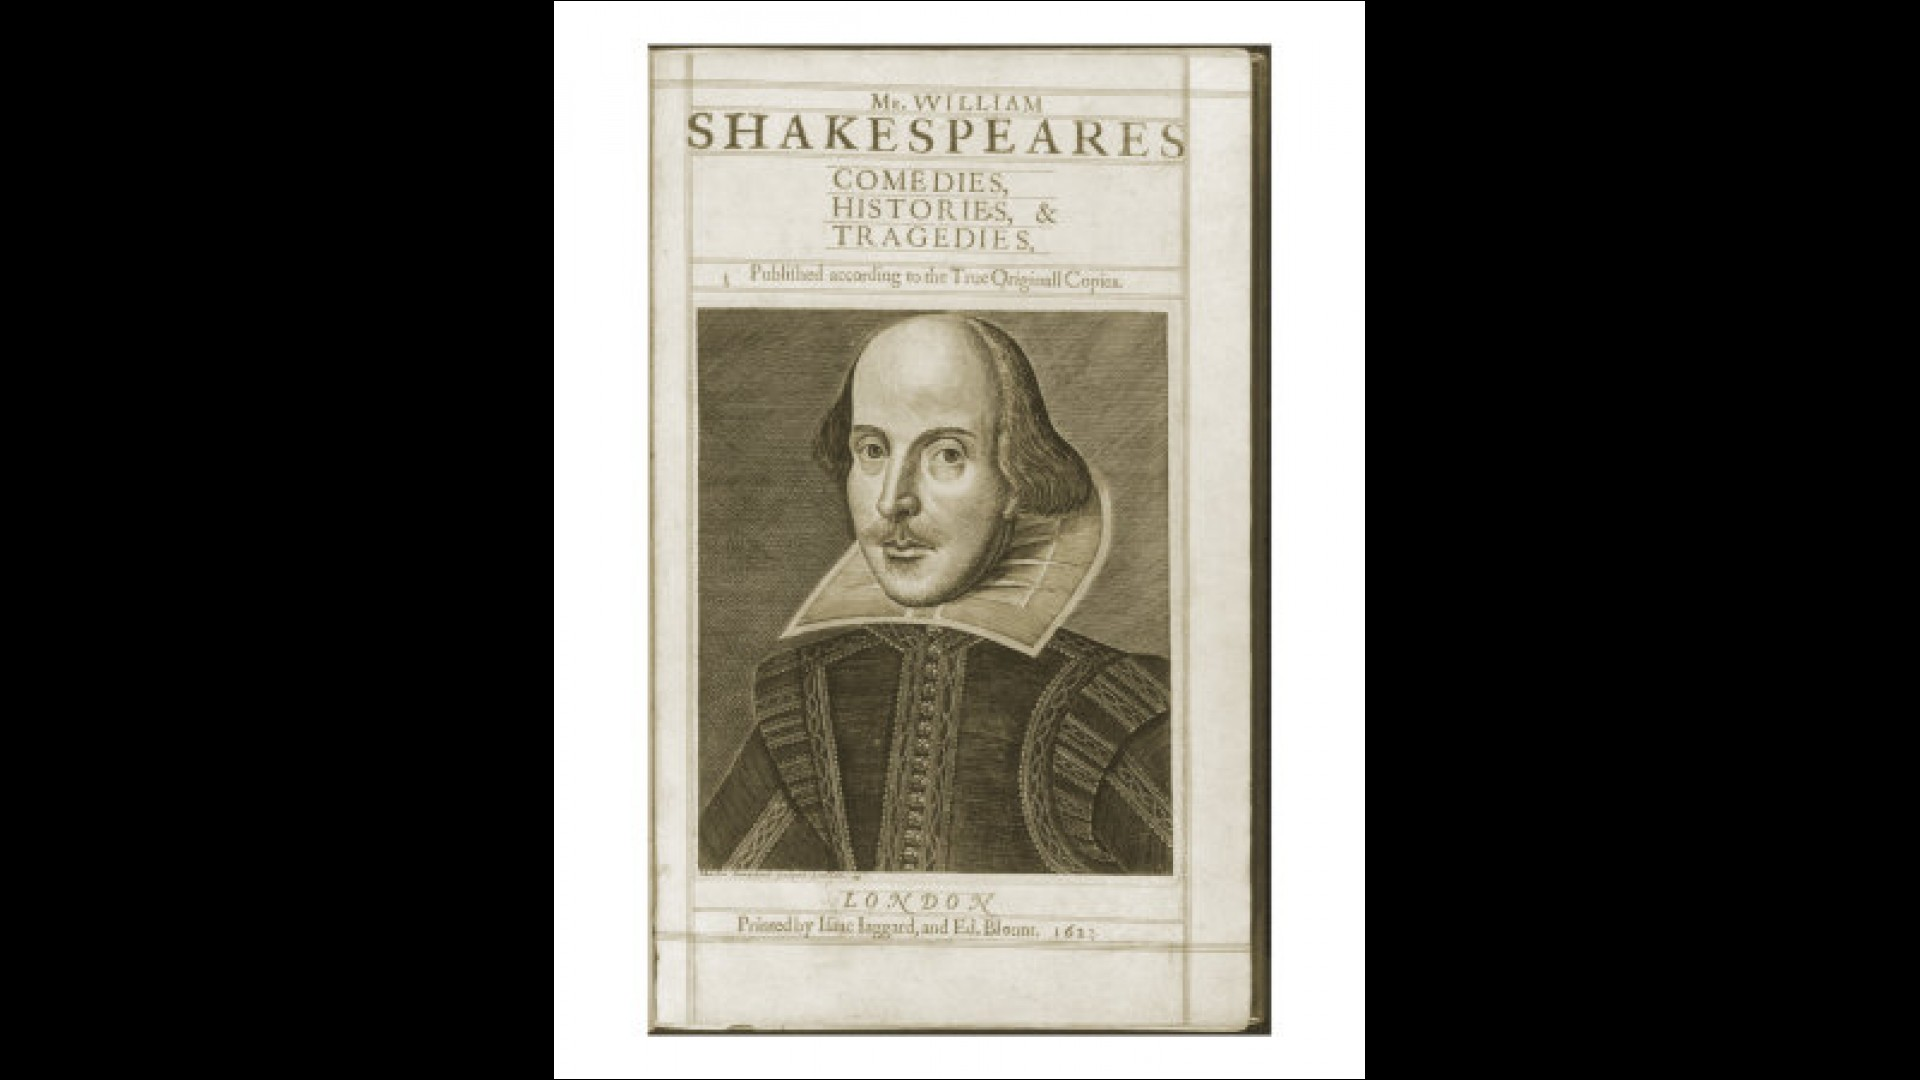 images as hidden meanings in shakespeares hamlet Get an answer for 'do you think shakespeare really wrote with hidden meanings or did he write simply to attract paying customers to the theatrewhat do you think' and find homework help for other hamlet questions at enotes.